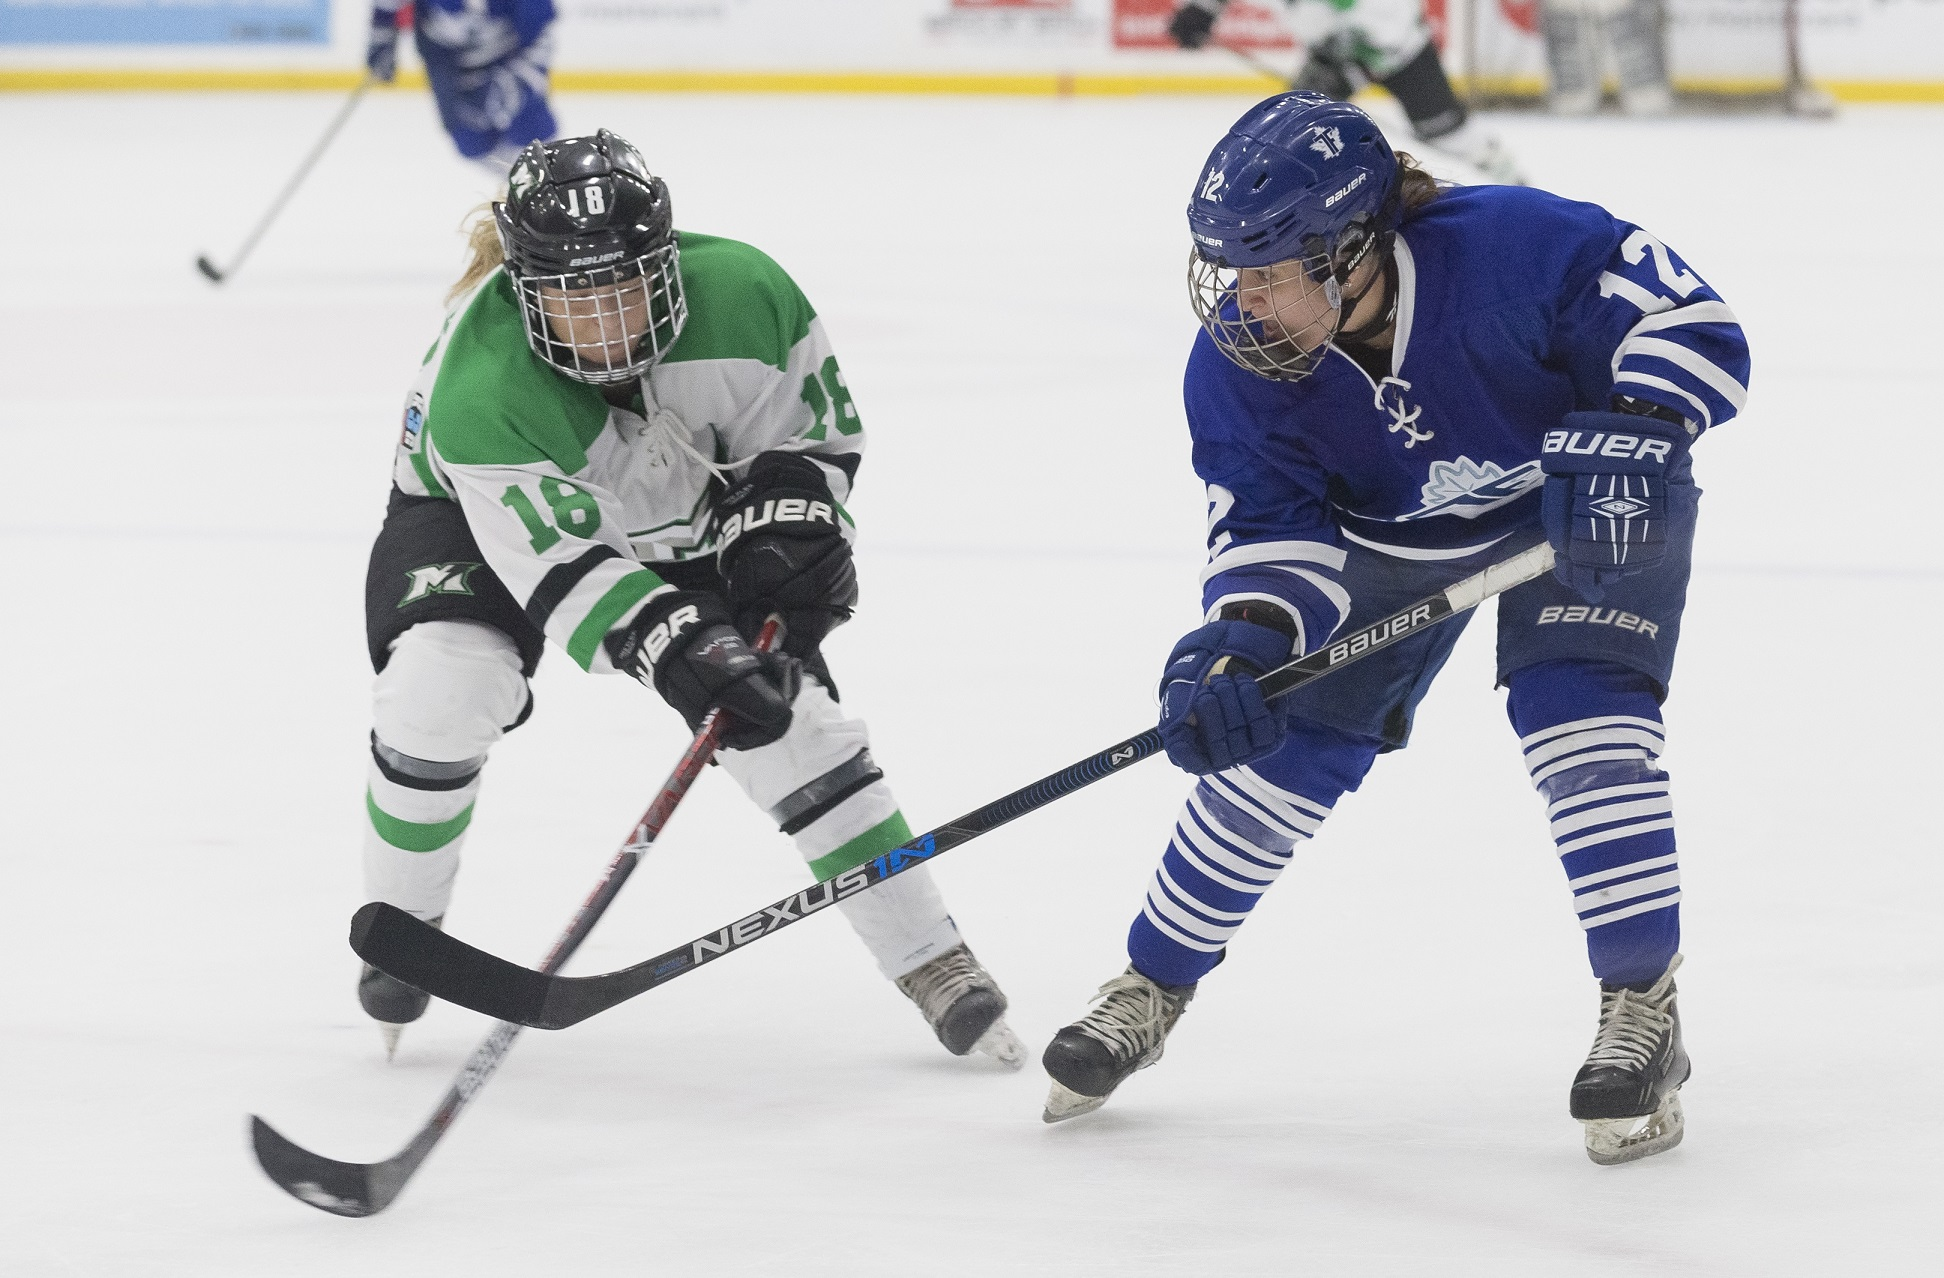 CWHL: New Draft Format Puts Prospects in Control